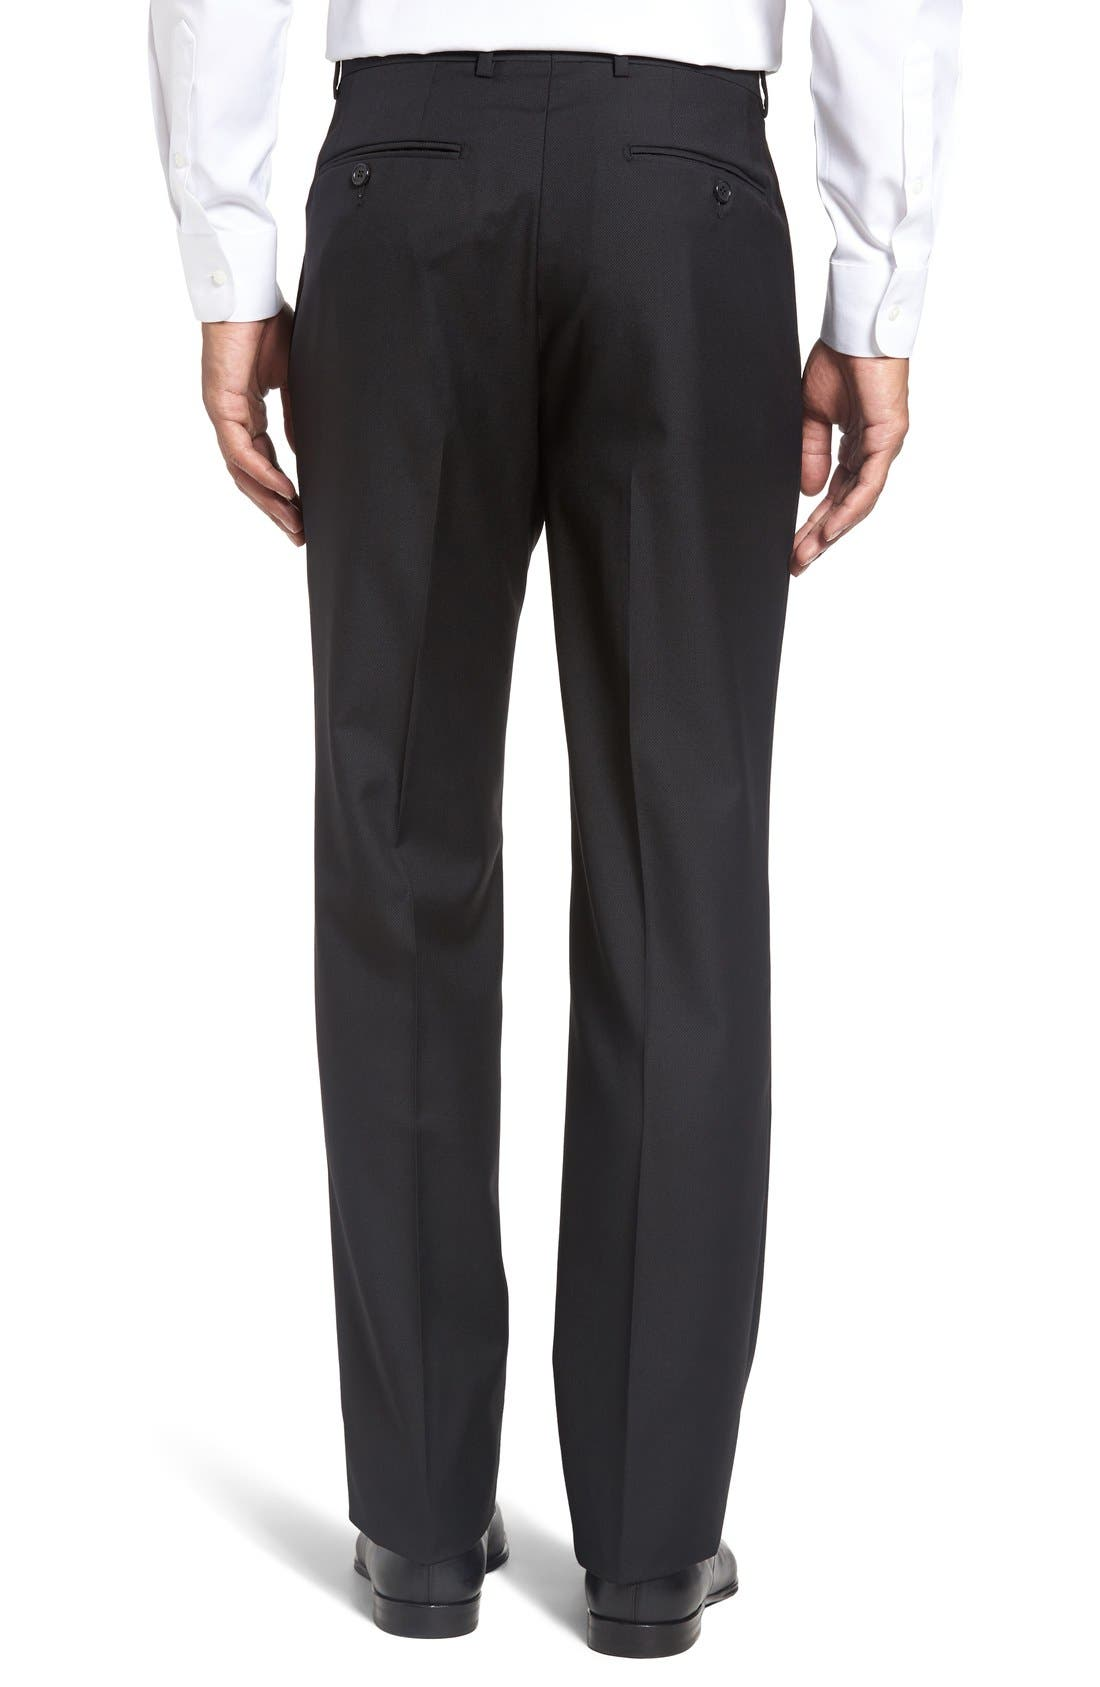 SANTORELLI, Flat Front Twill Wool Trousers, Alternate thumbnail 3, color, BLACK